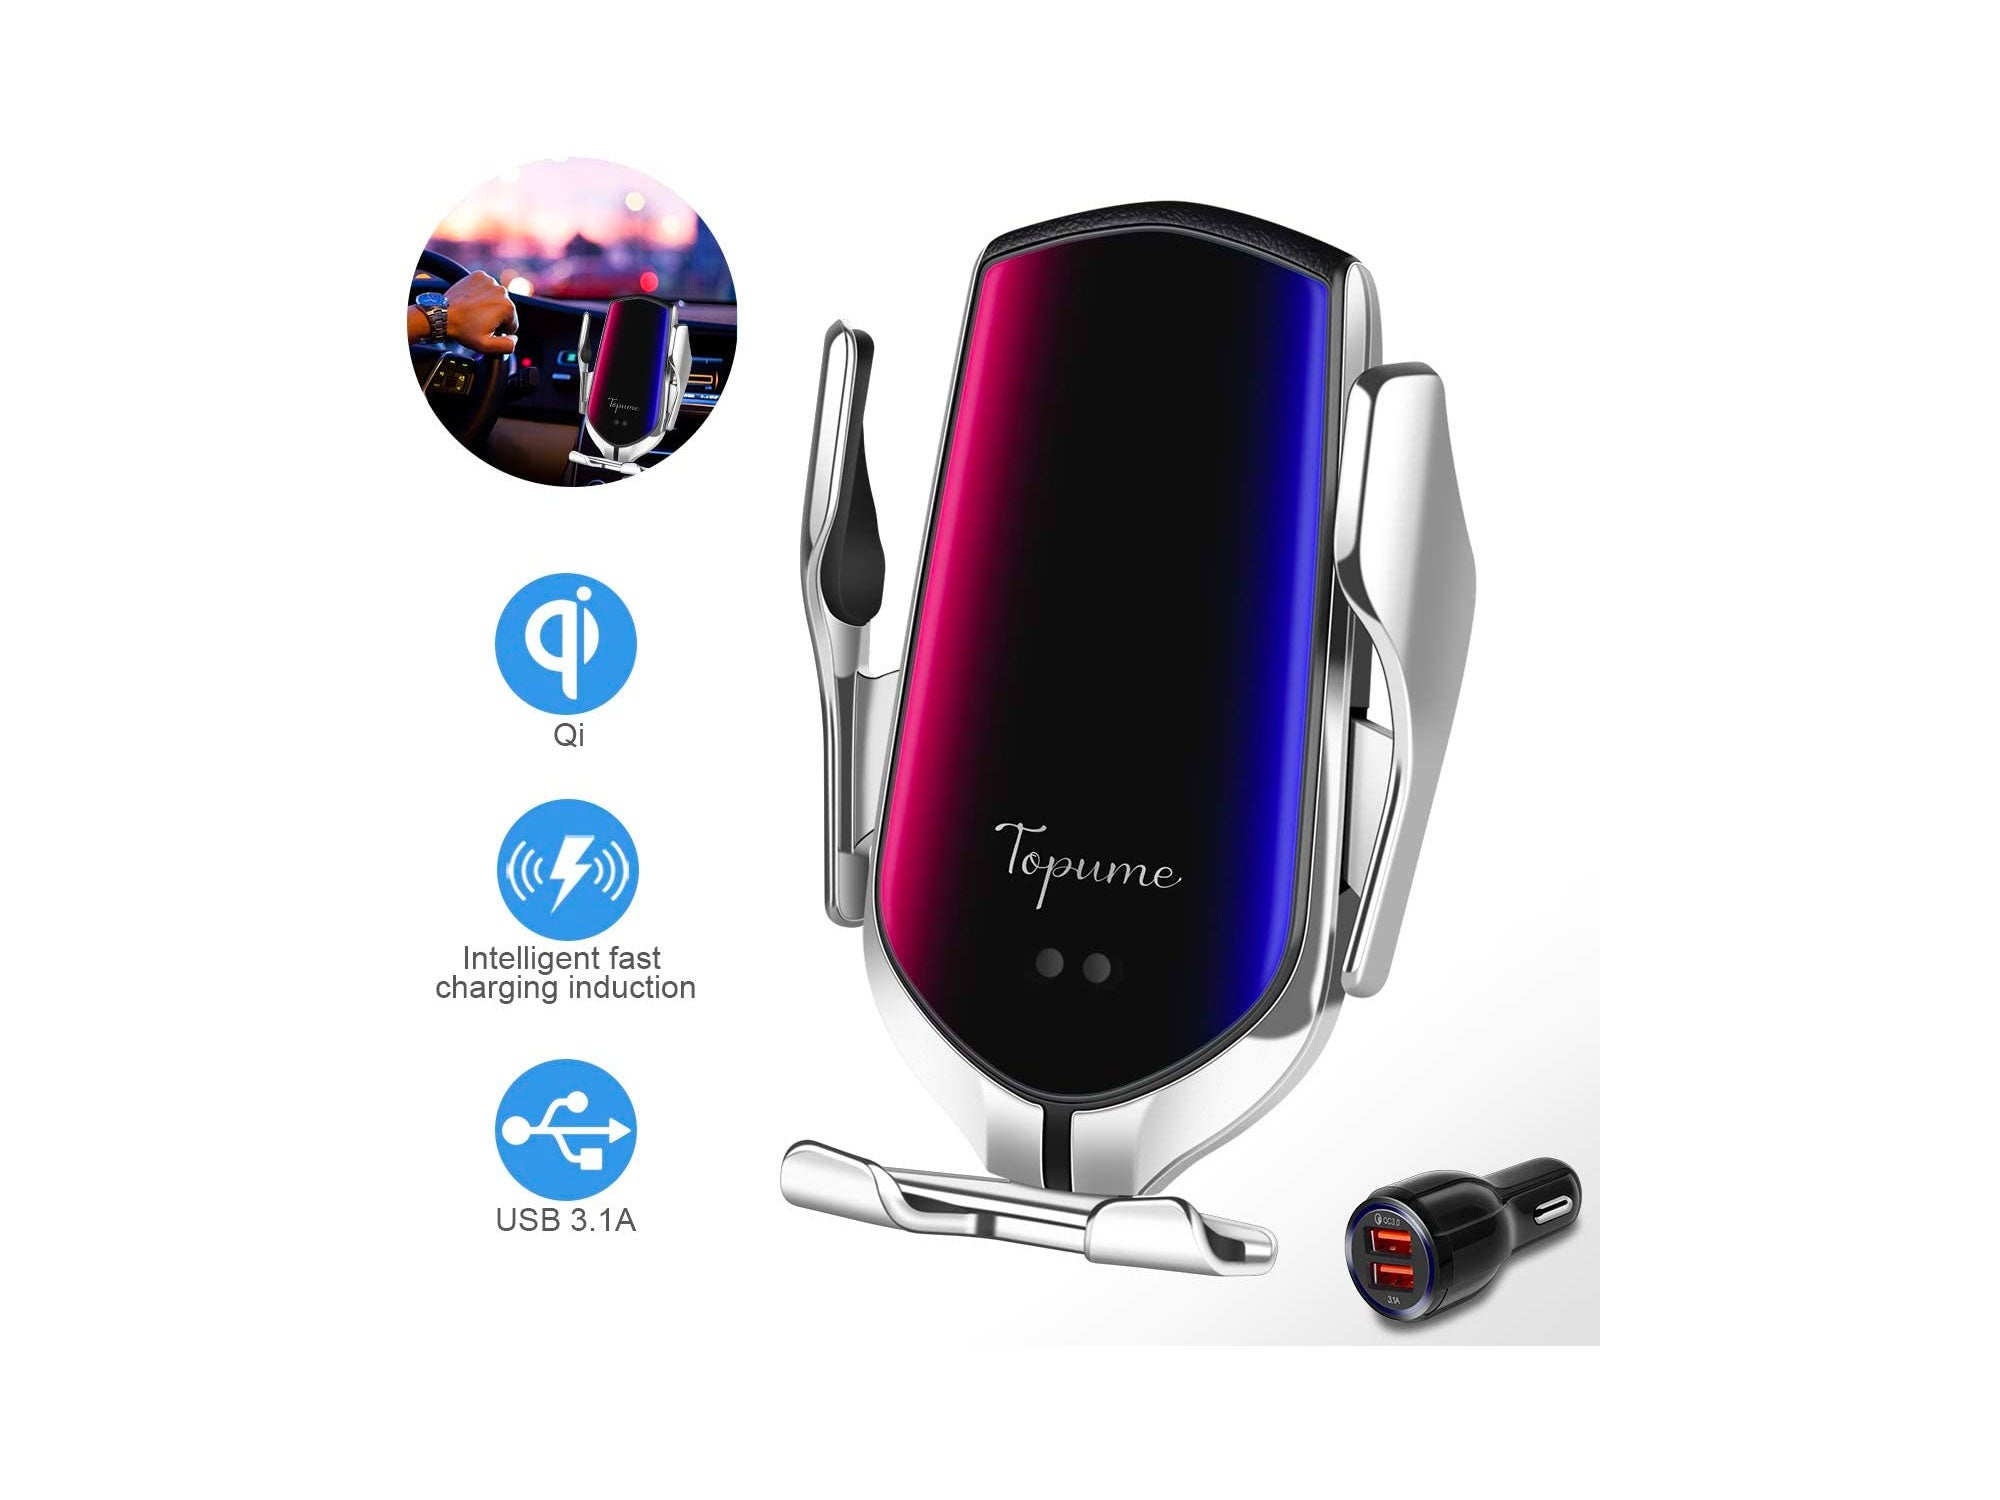 Wireless Charger Car Touch Sensing Automatic Retractable Clip Fast Charging Compatible for iPhone Xs Max/XR/X/8/8Plus, Samsung S9/S8/Note8